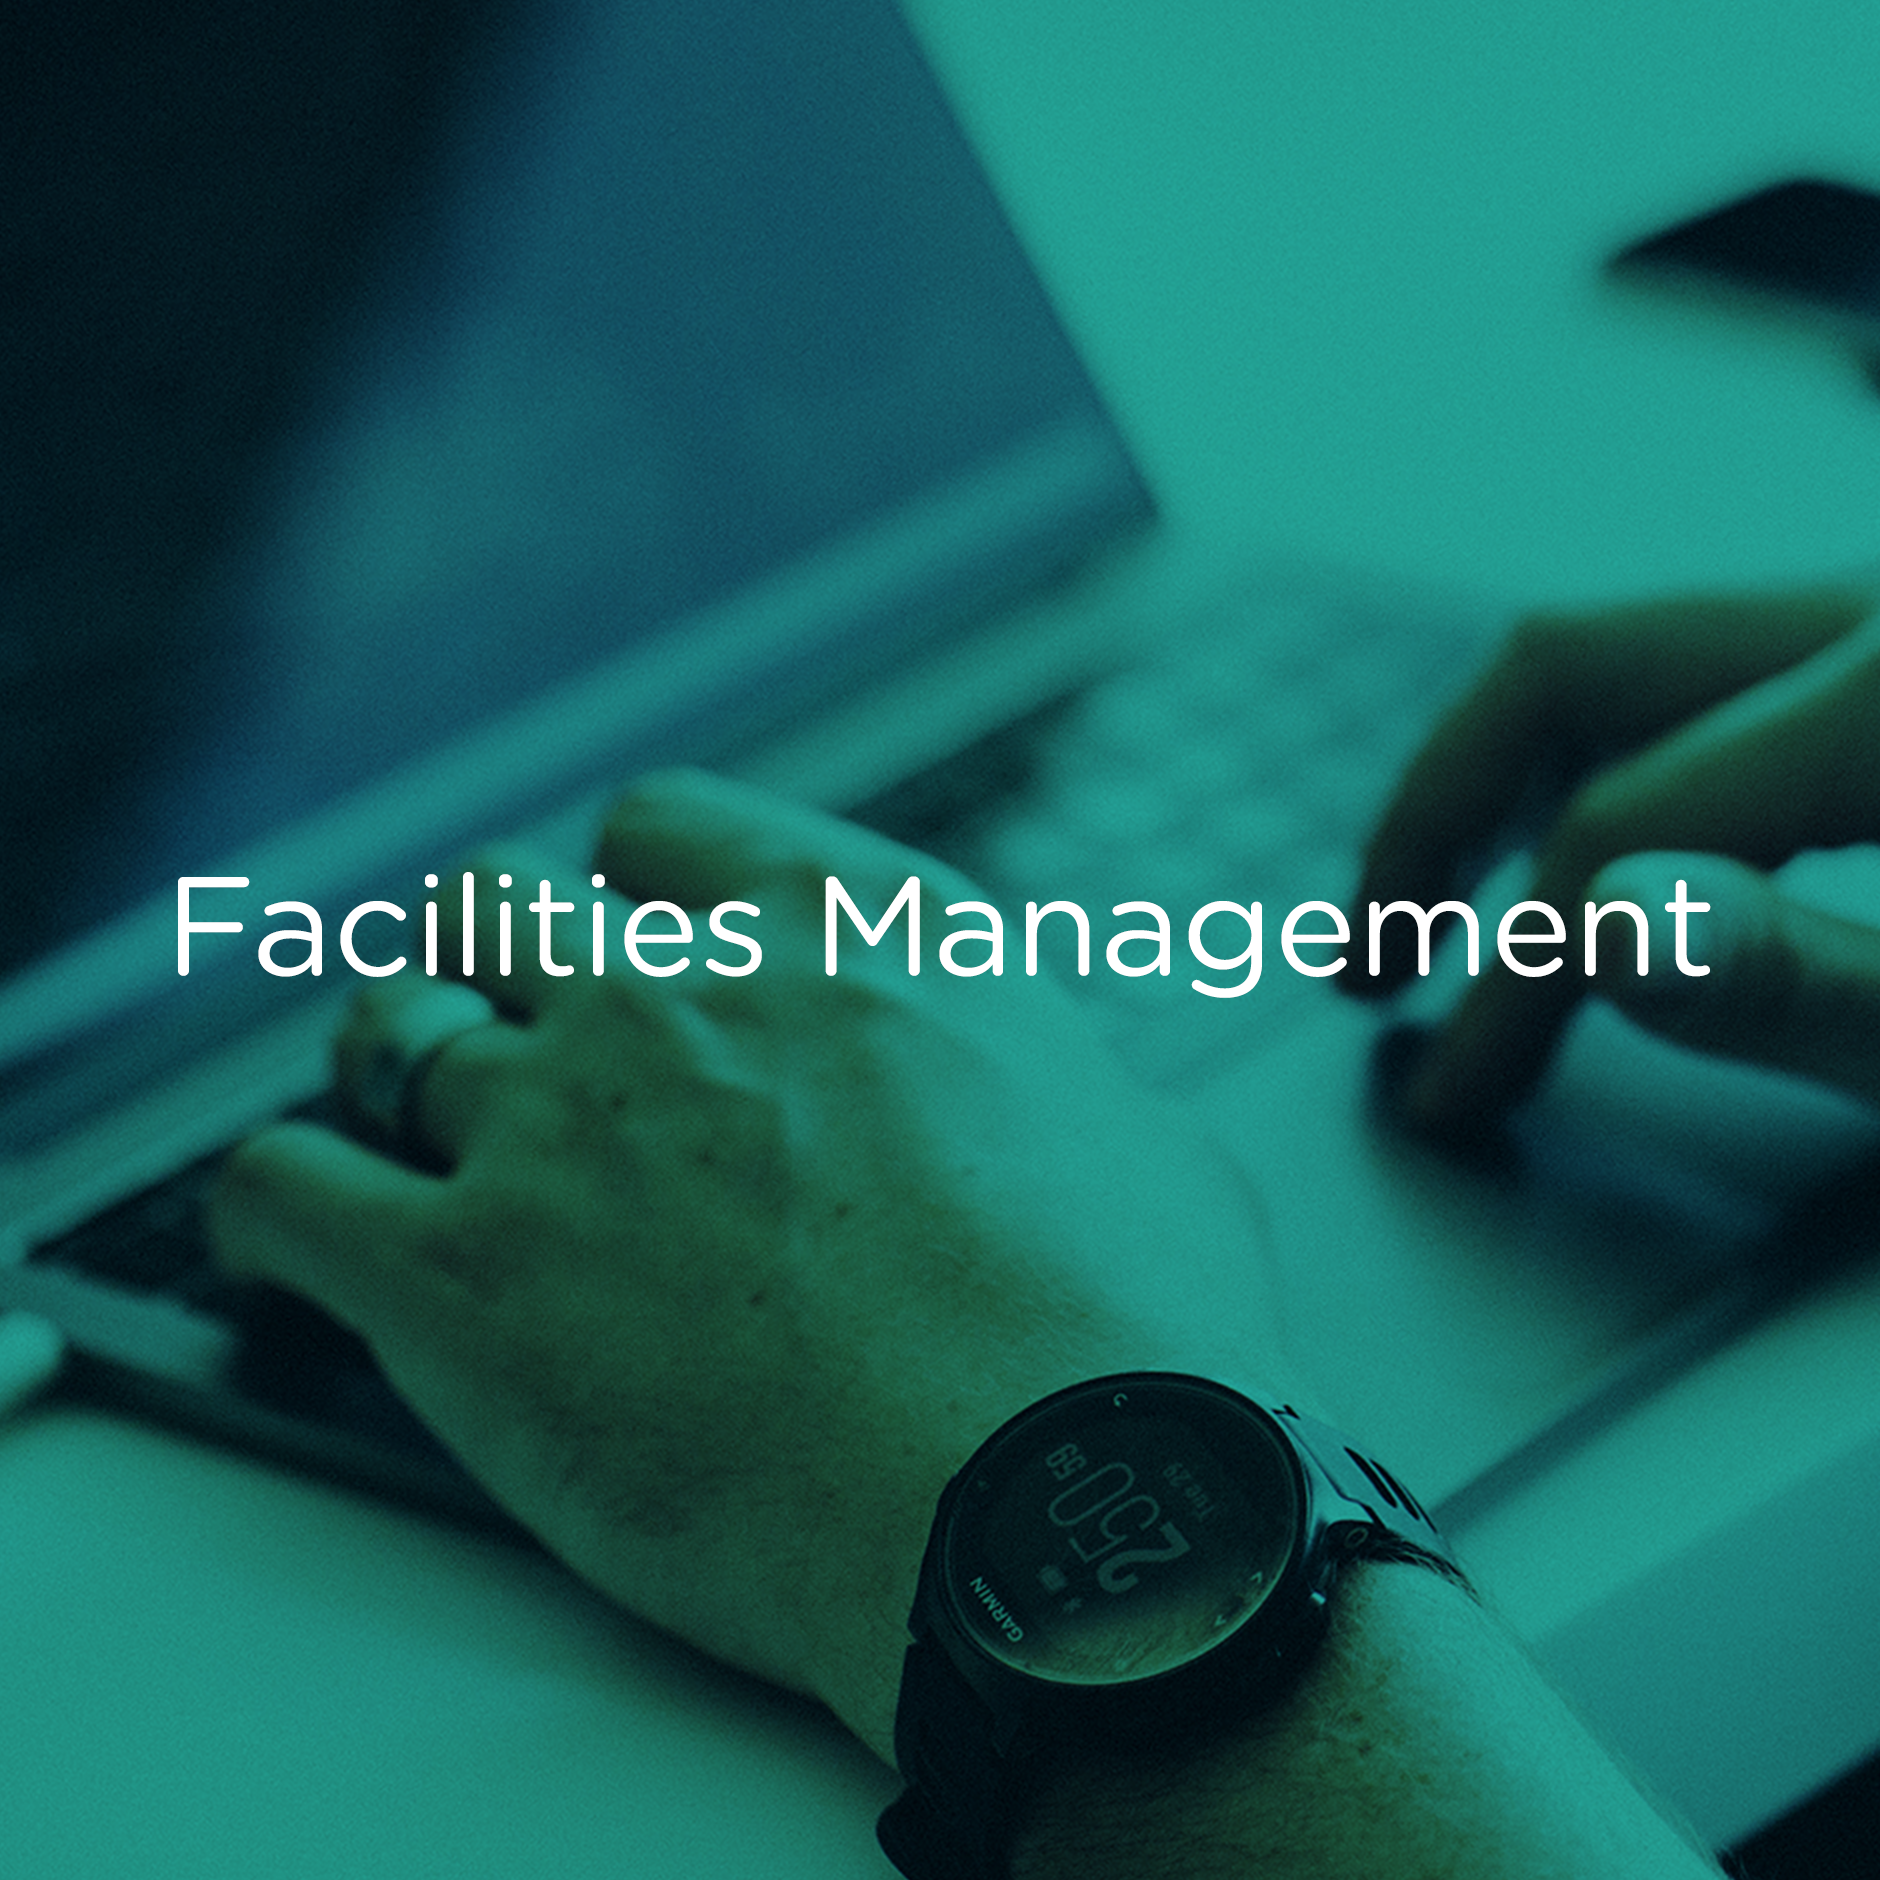 FacilitiesManagement_940x940@2x.png